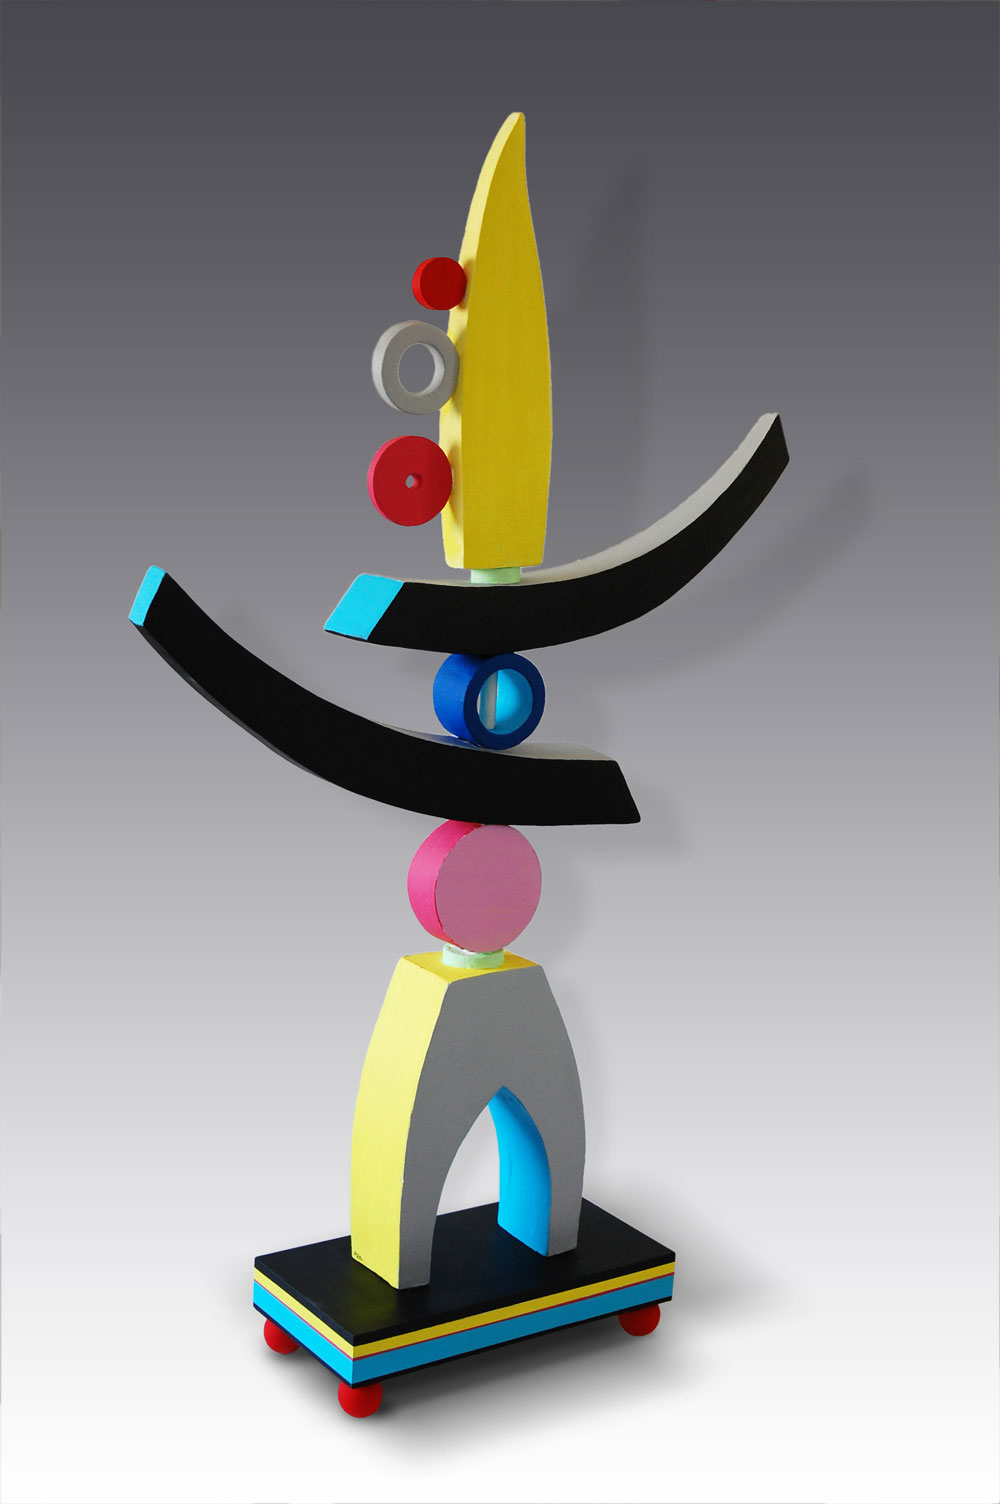 glos.info chapel arts Colourful Sculpture by Patricia Volk